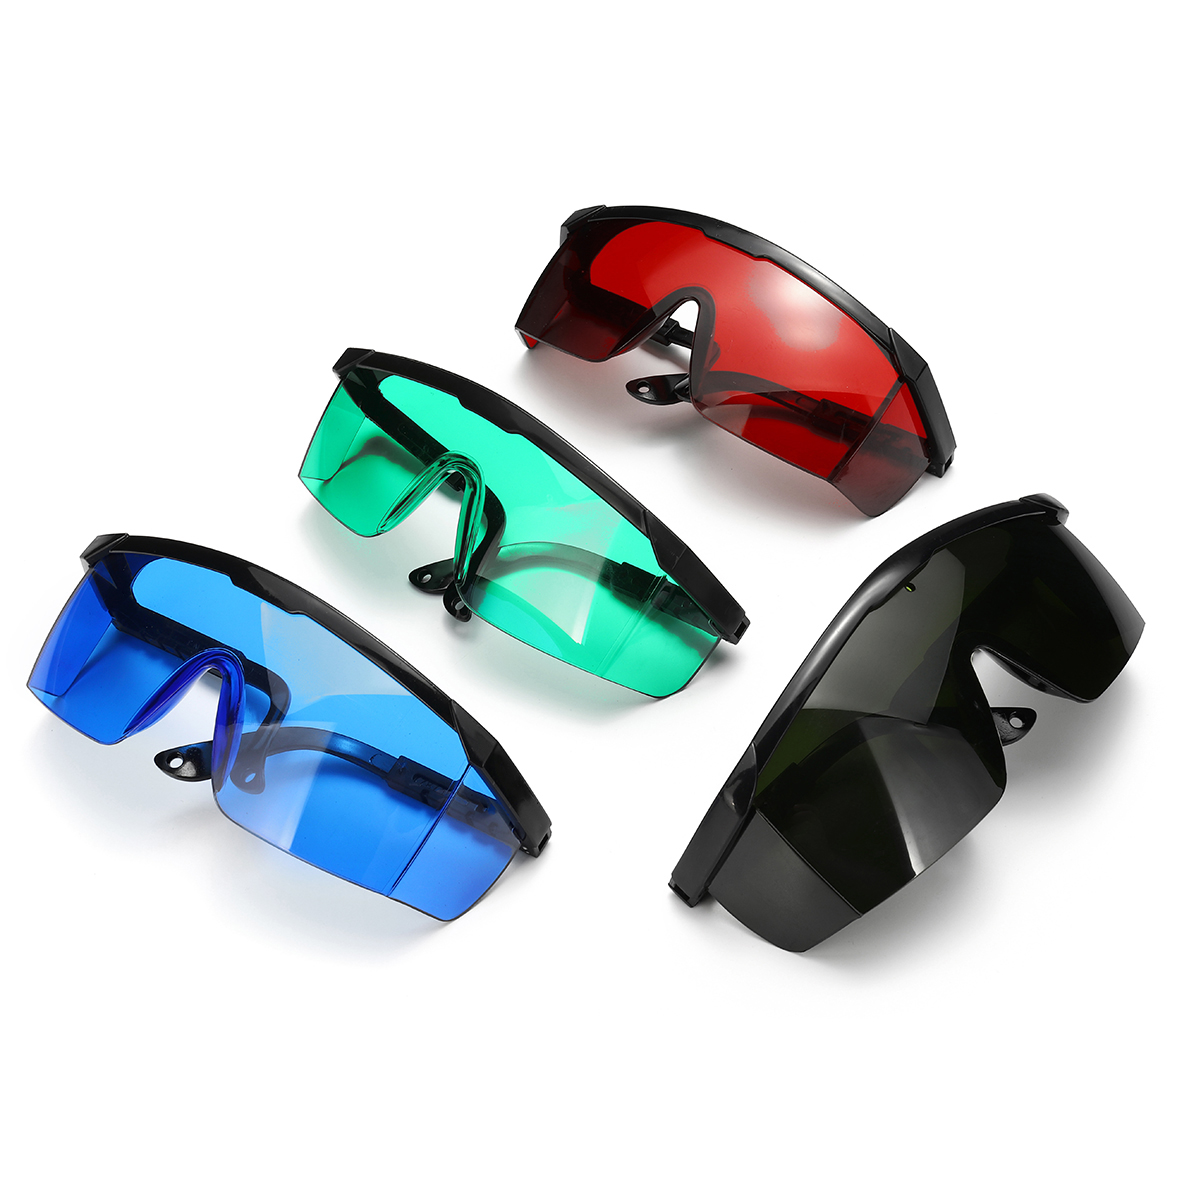 500nm-1800nm Laser Protection Goggles Safety Glasses Spectacles Lightproof Protective Eyewear